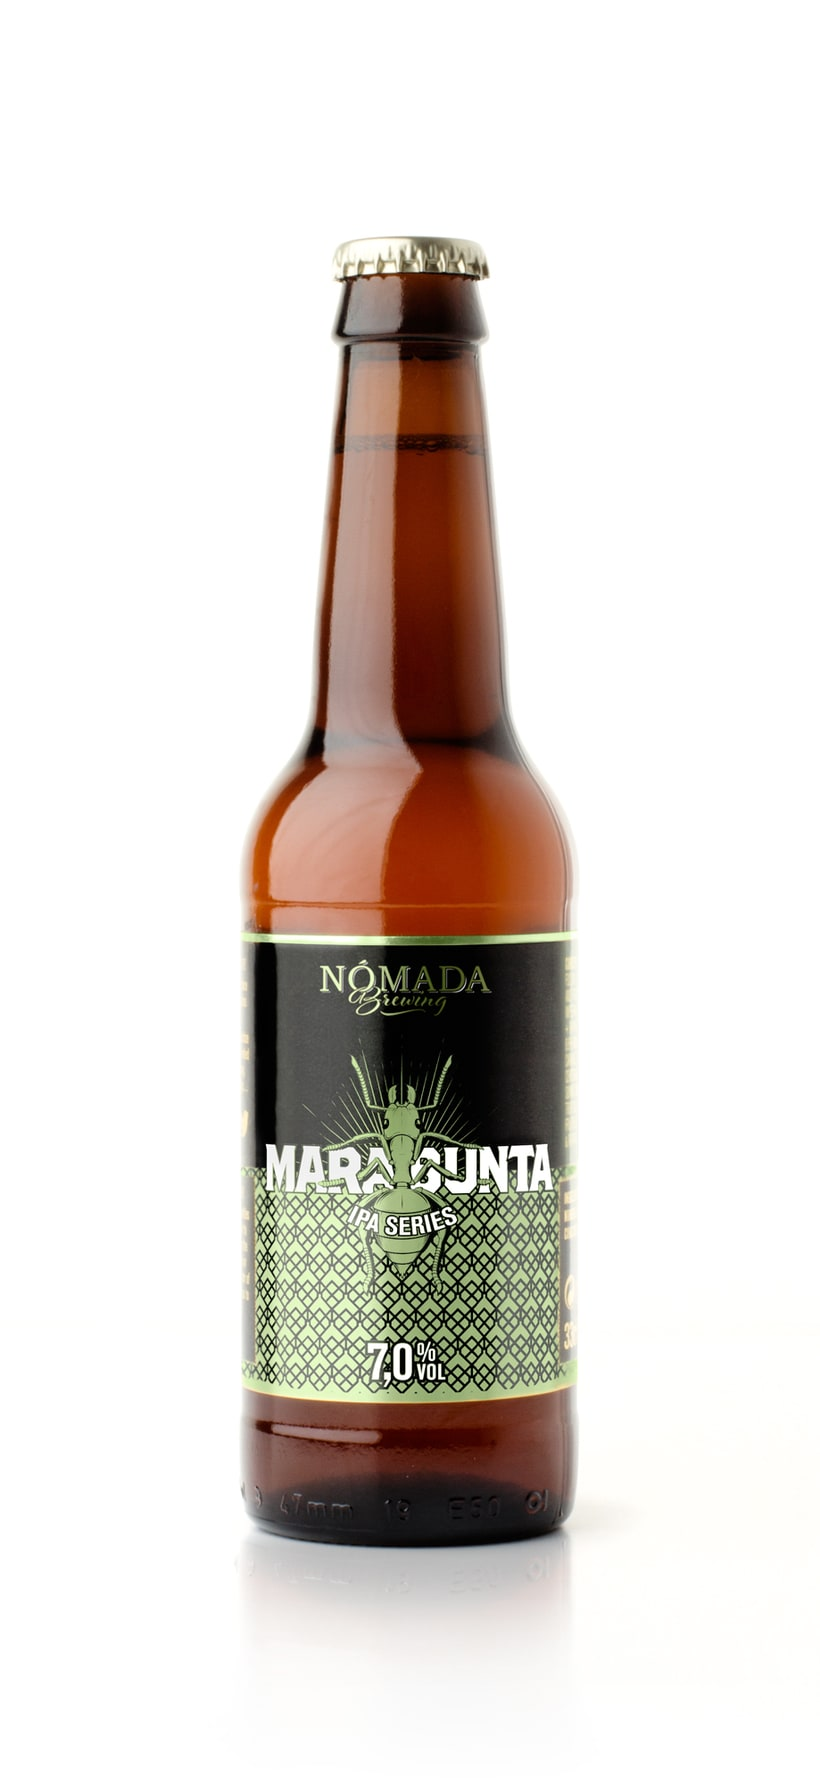 MARABUNTA, for Nomada Brewing 3